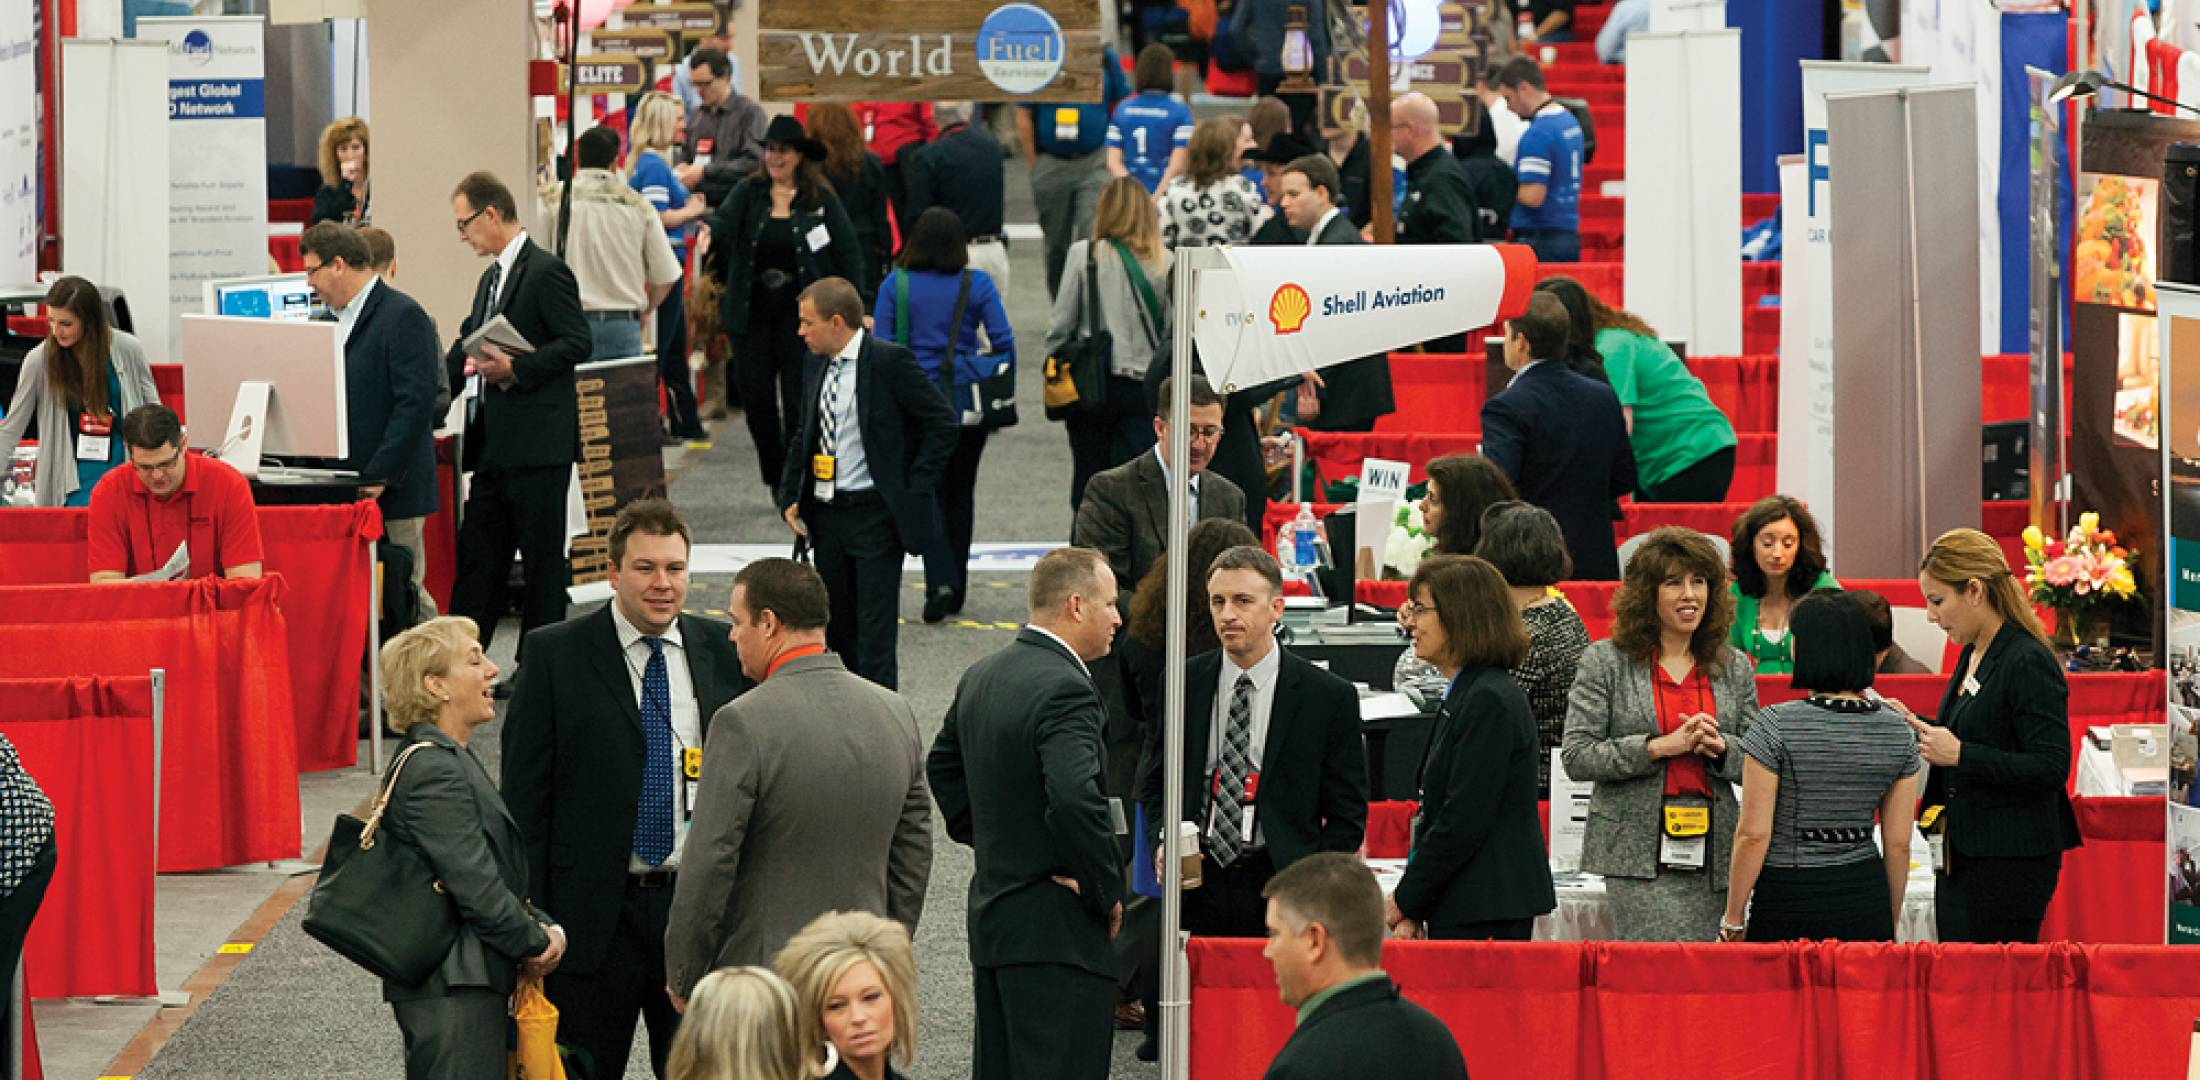 This year's conference ranked as the fourth highest in terms of attendance. It did set a new record for exhibitors with 425 FBOs and other flight support providers demonstrating their services to the flight department members who make up the majority of the conference's clientele.